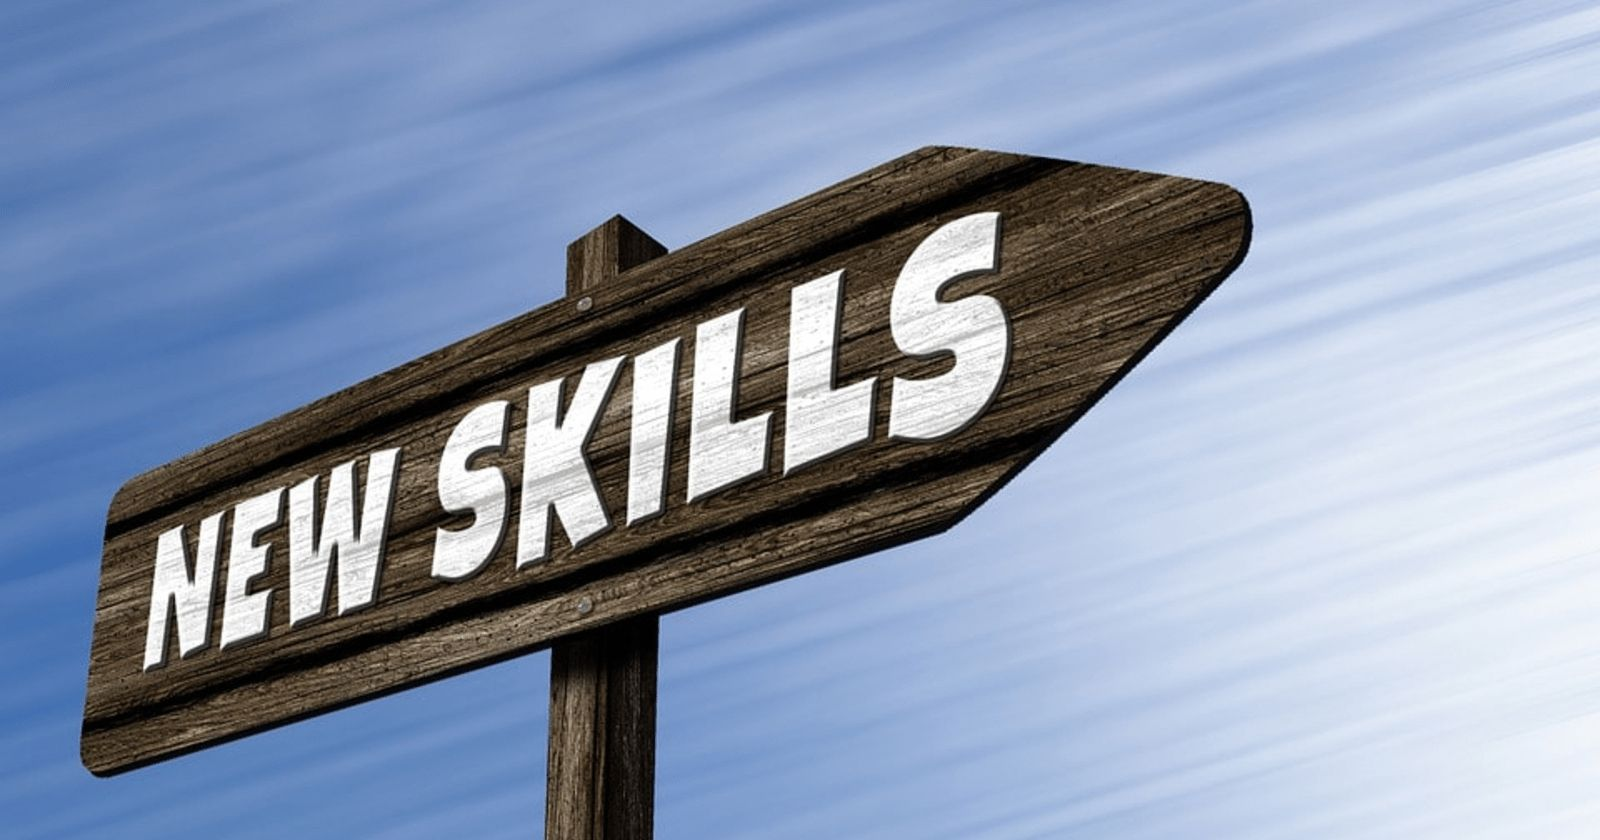 Hiring an #SEO anytime soon? Check if they have these skills. ��via @RyanJones https://t.co/ep2JsPMHDB https://t.co/PnSvSd6PpV